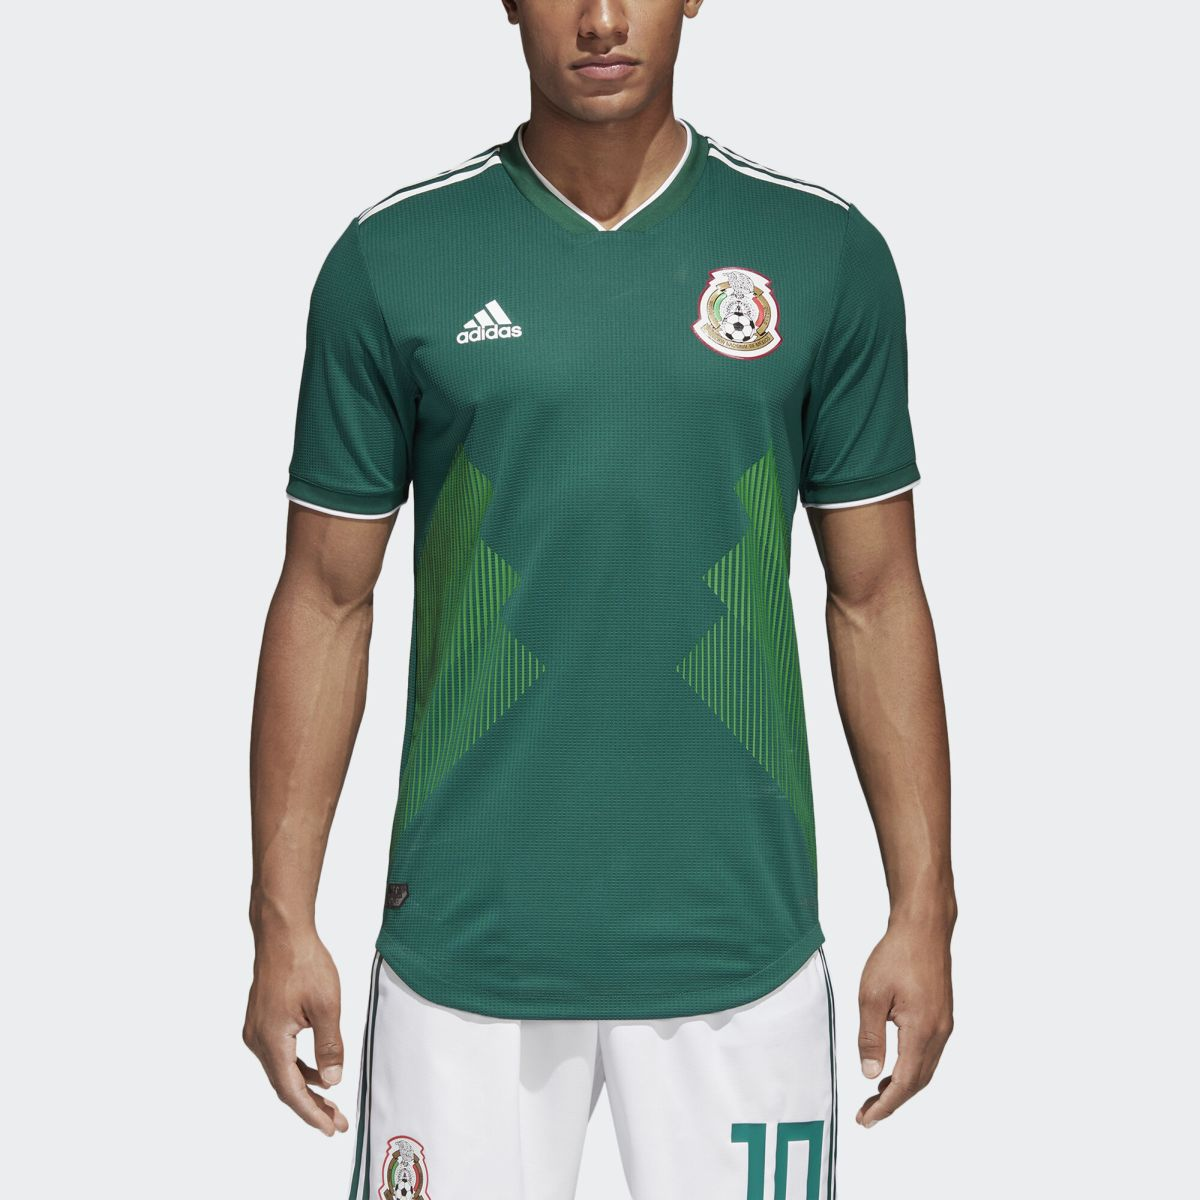 adf1a604ff8 17008. Mexico will have a new jersey 100% made in Mexico ...